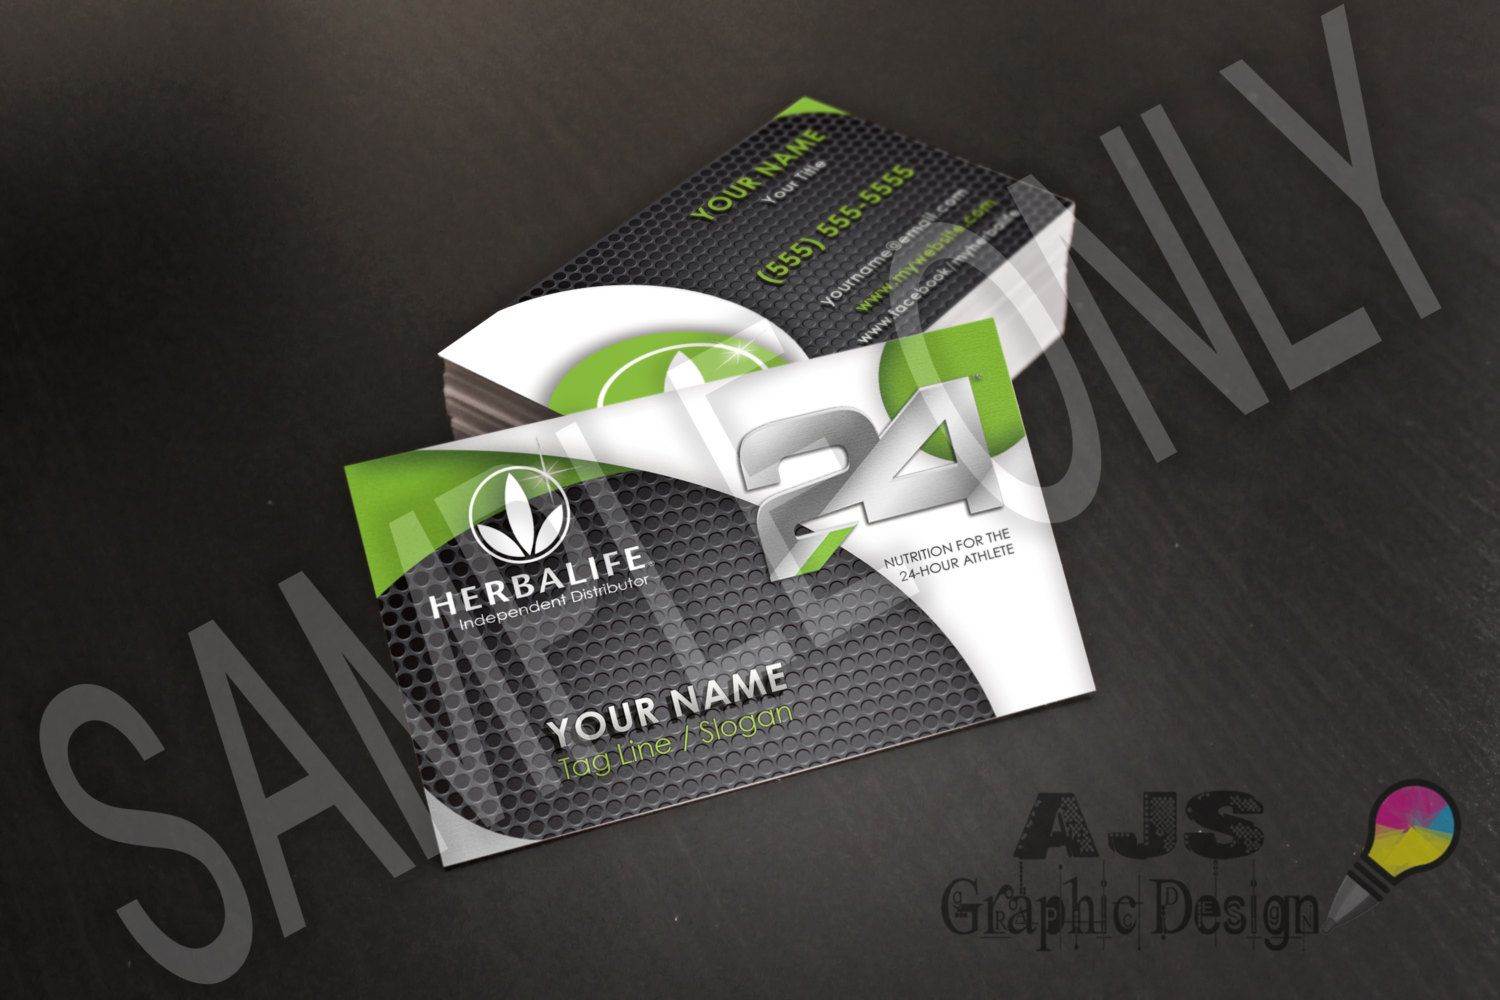 Herbalife Custom Business Cards 24 • Herbalife Graphics • Herbalife ...